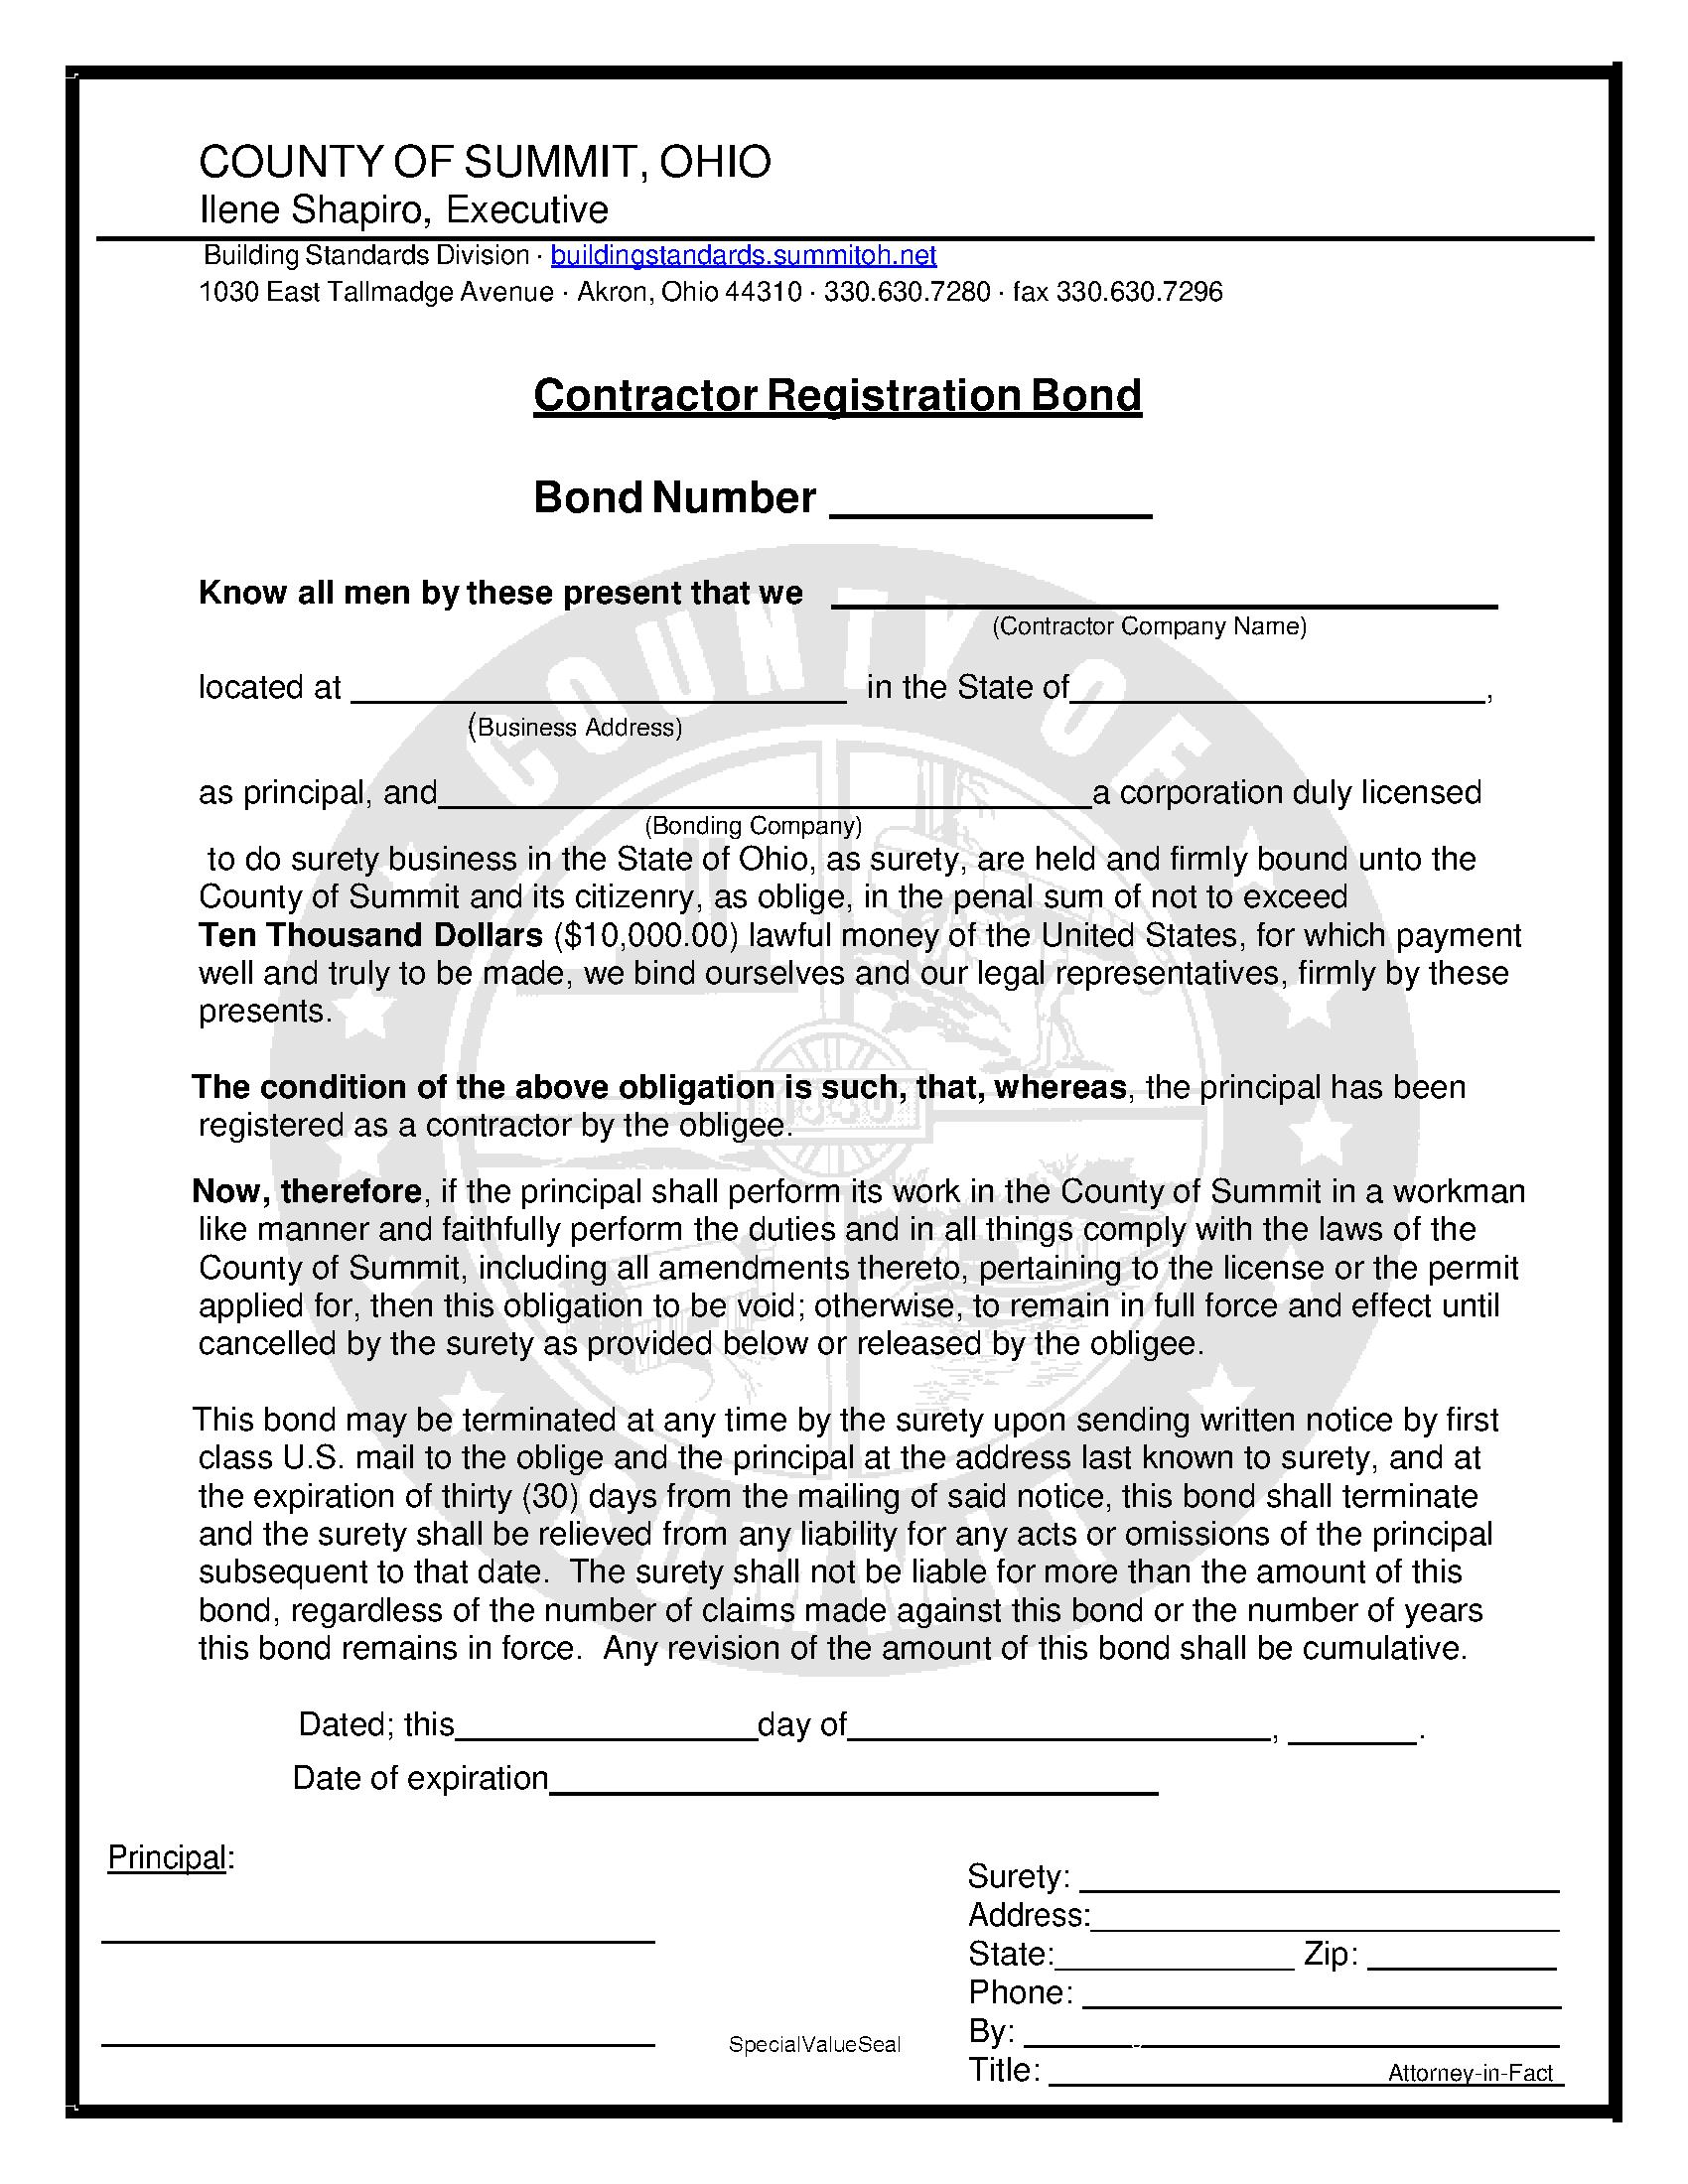 Summit County Contractor Registration sample image